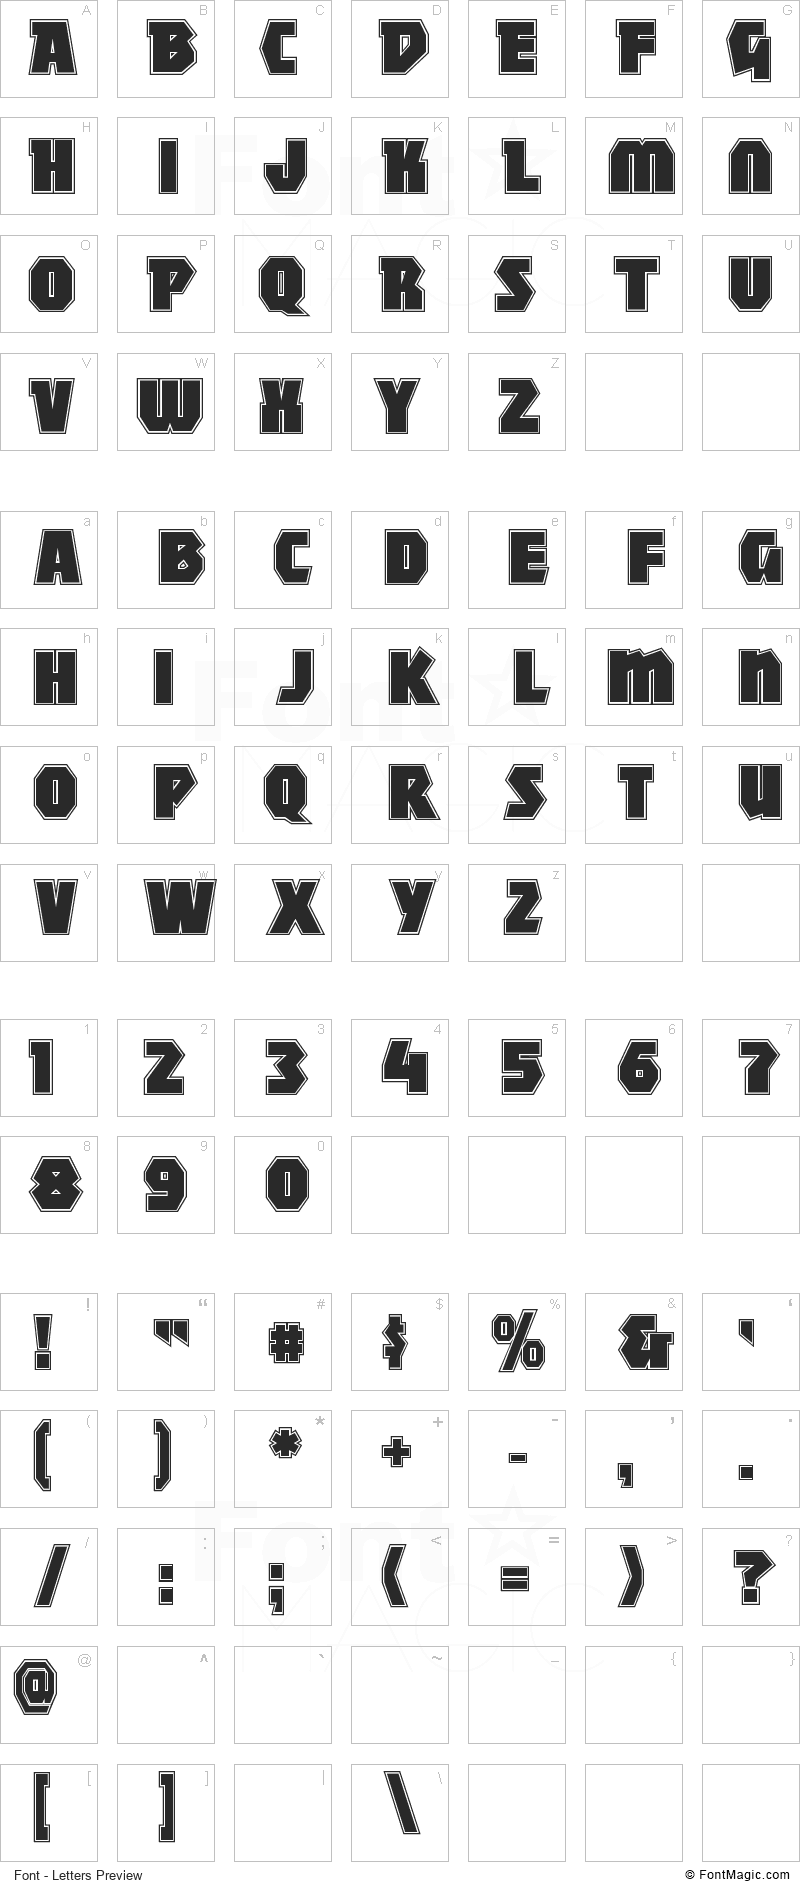 Mighty Font - All Latters Preview Chart